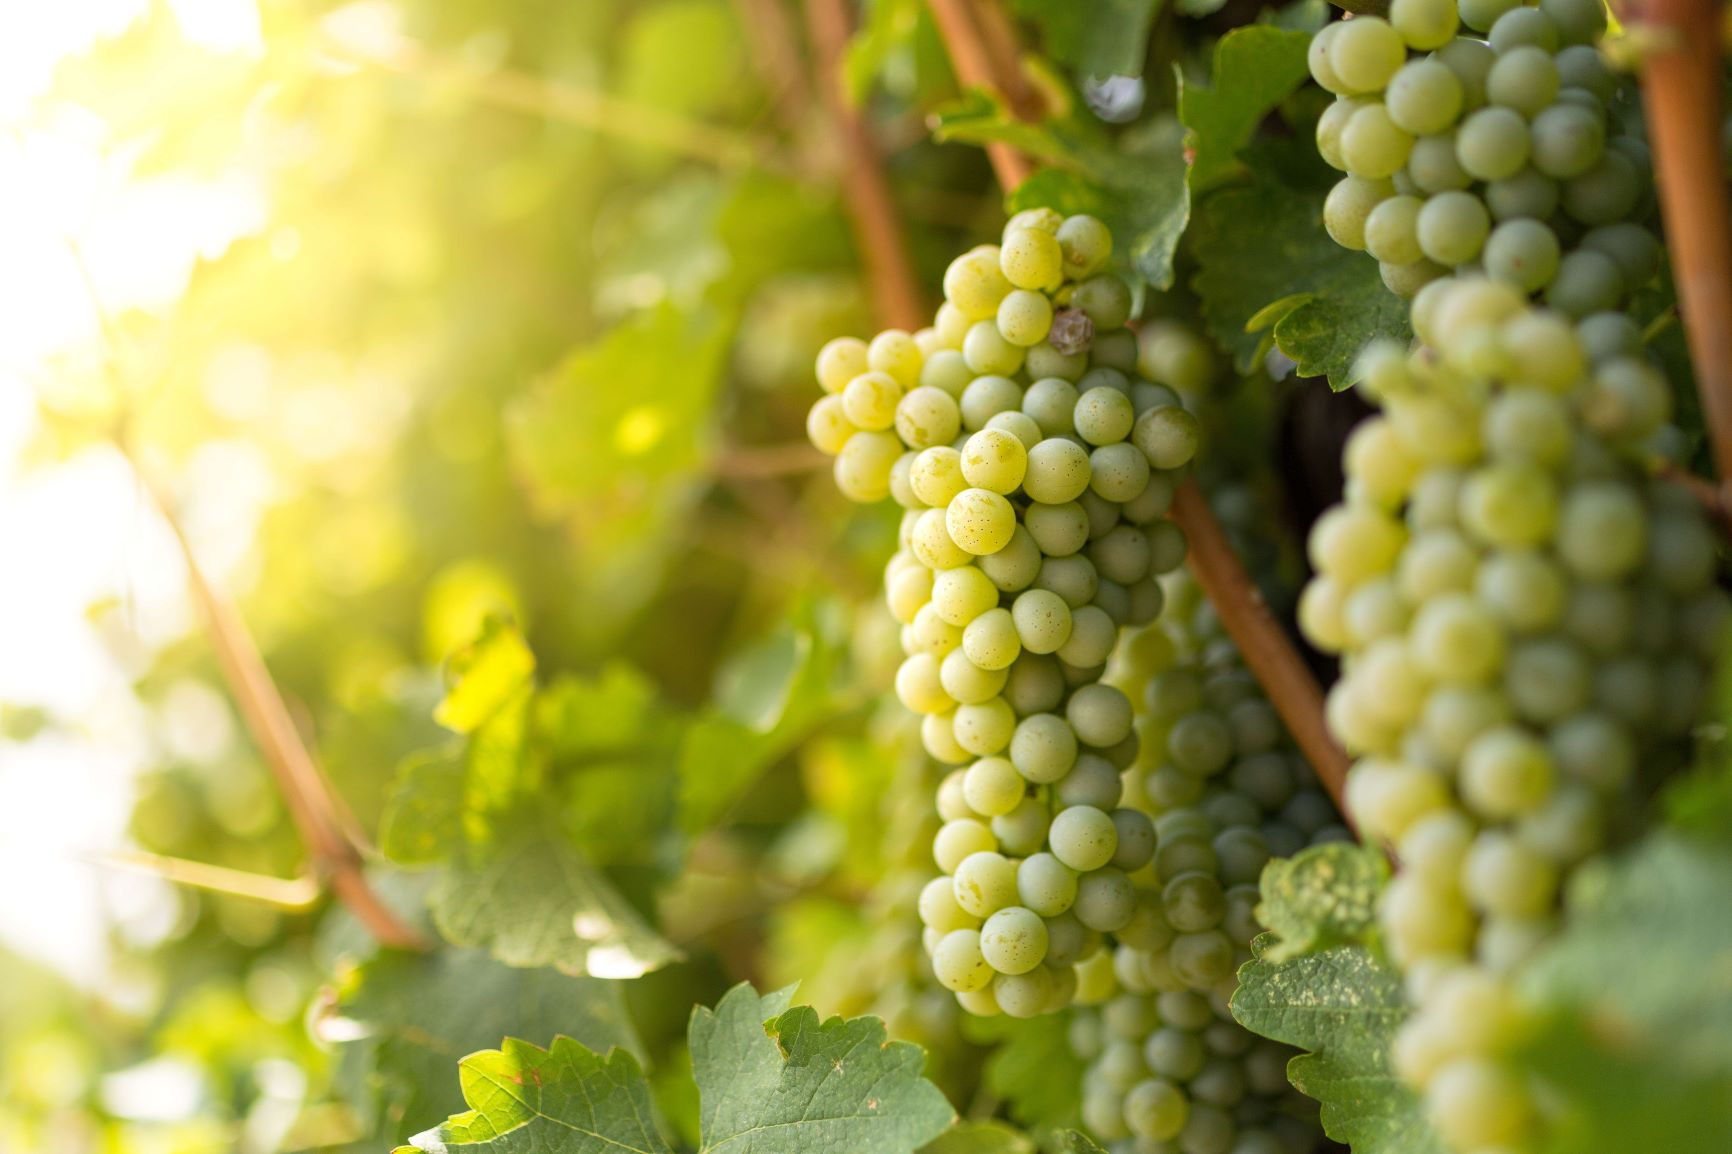 Clusters of Sauvignon Blanc grapes on the vine